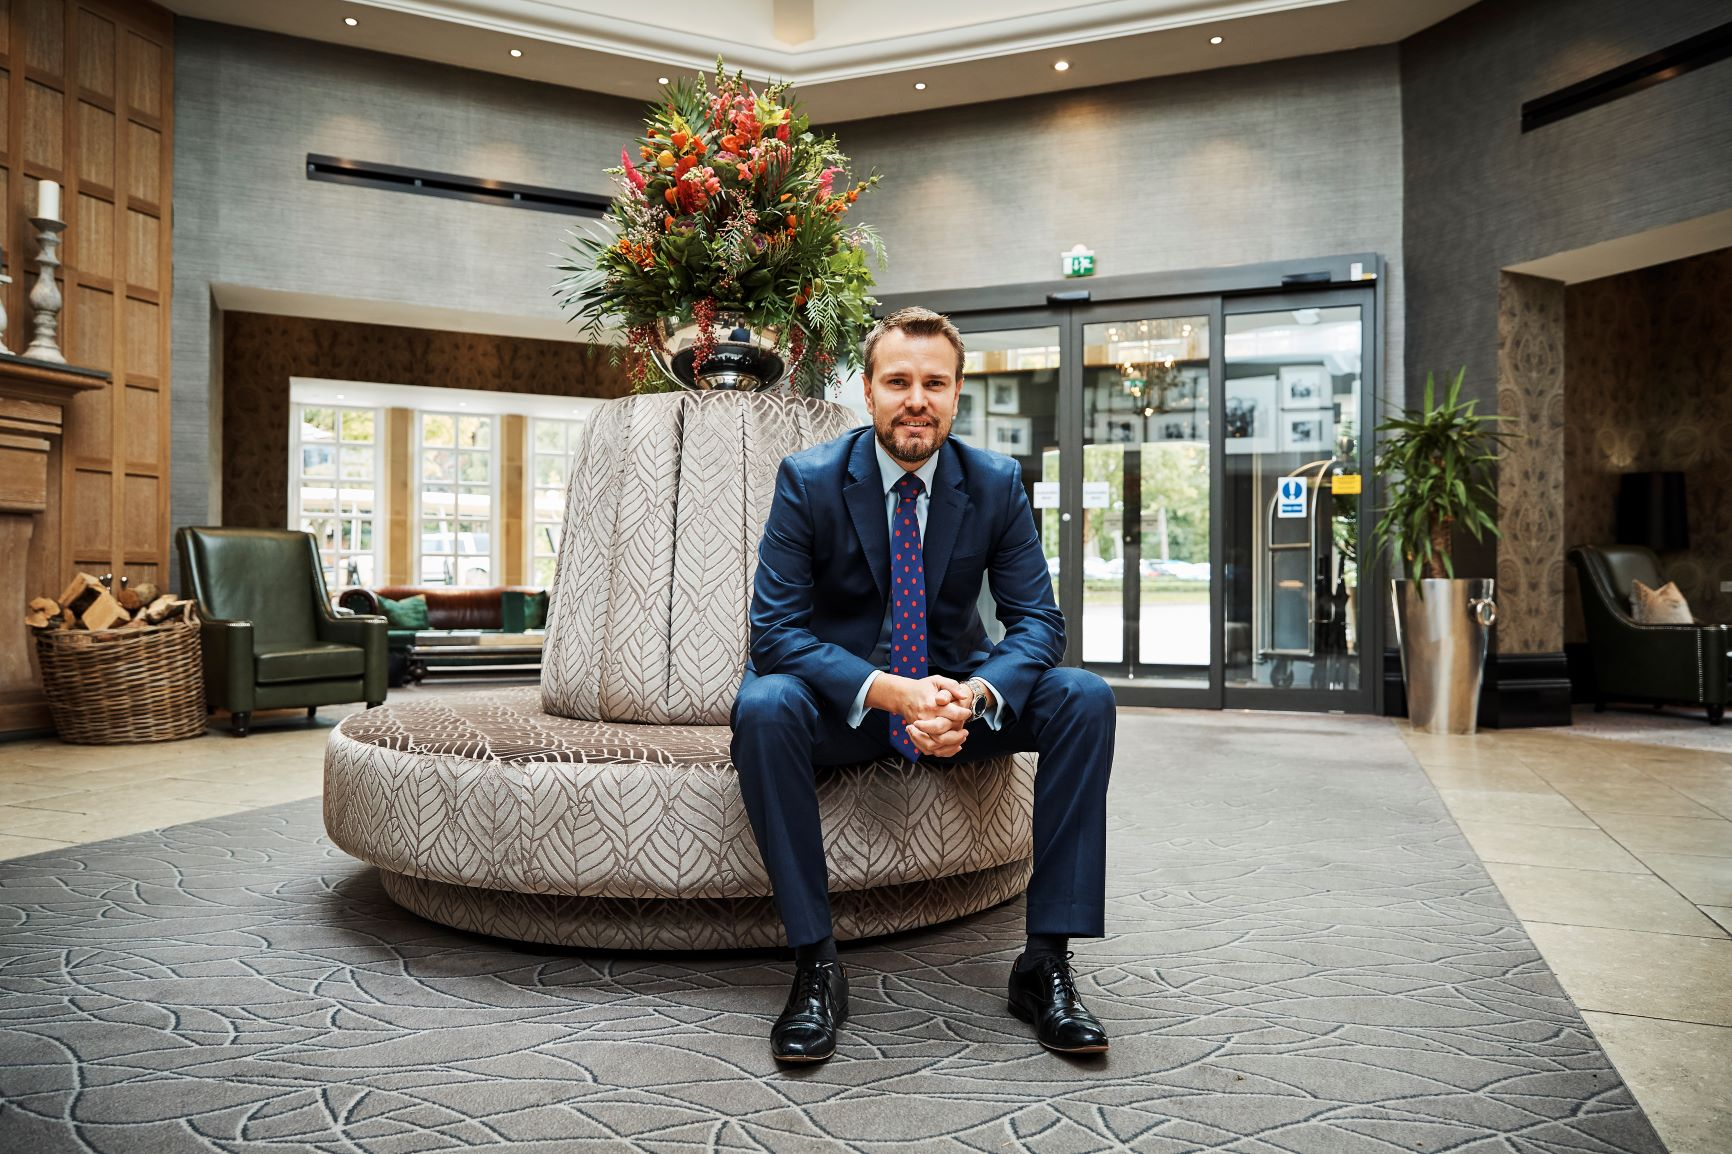 Chris Eigelaar, Resort General Manager at The Belfry Hotel & Resort